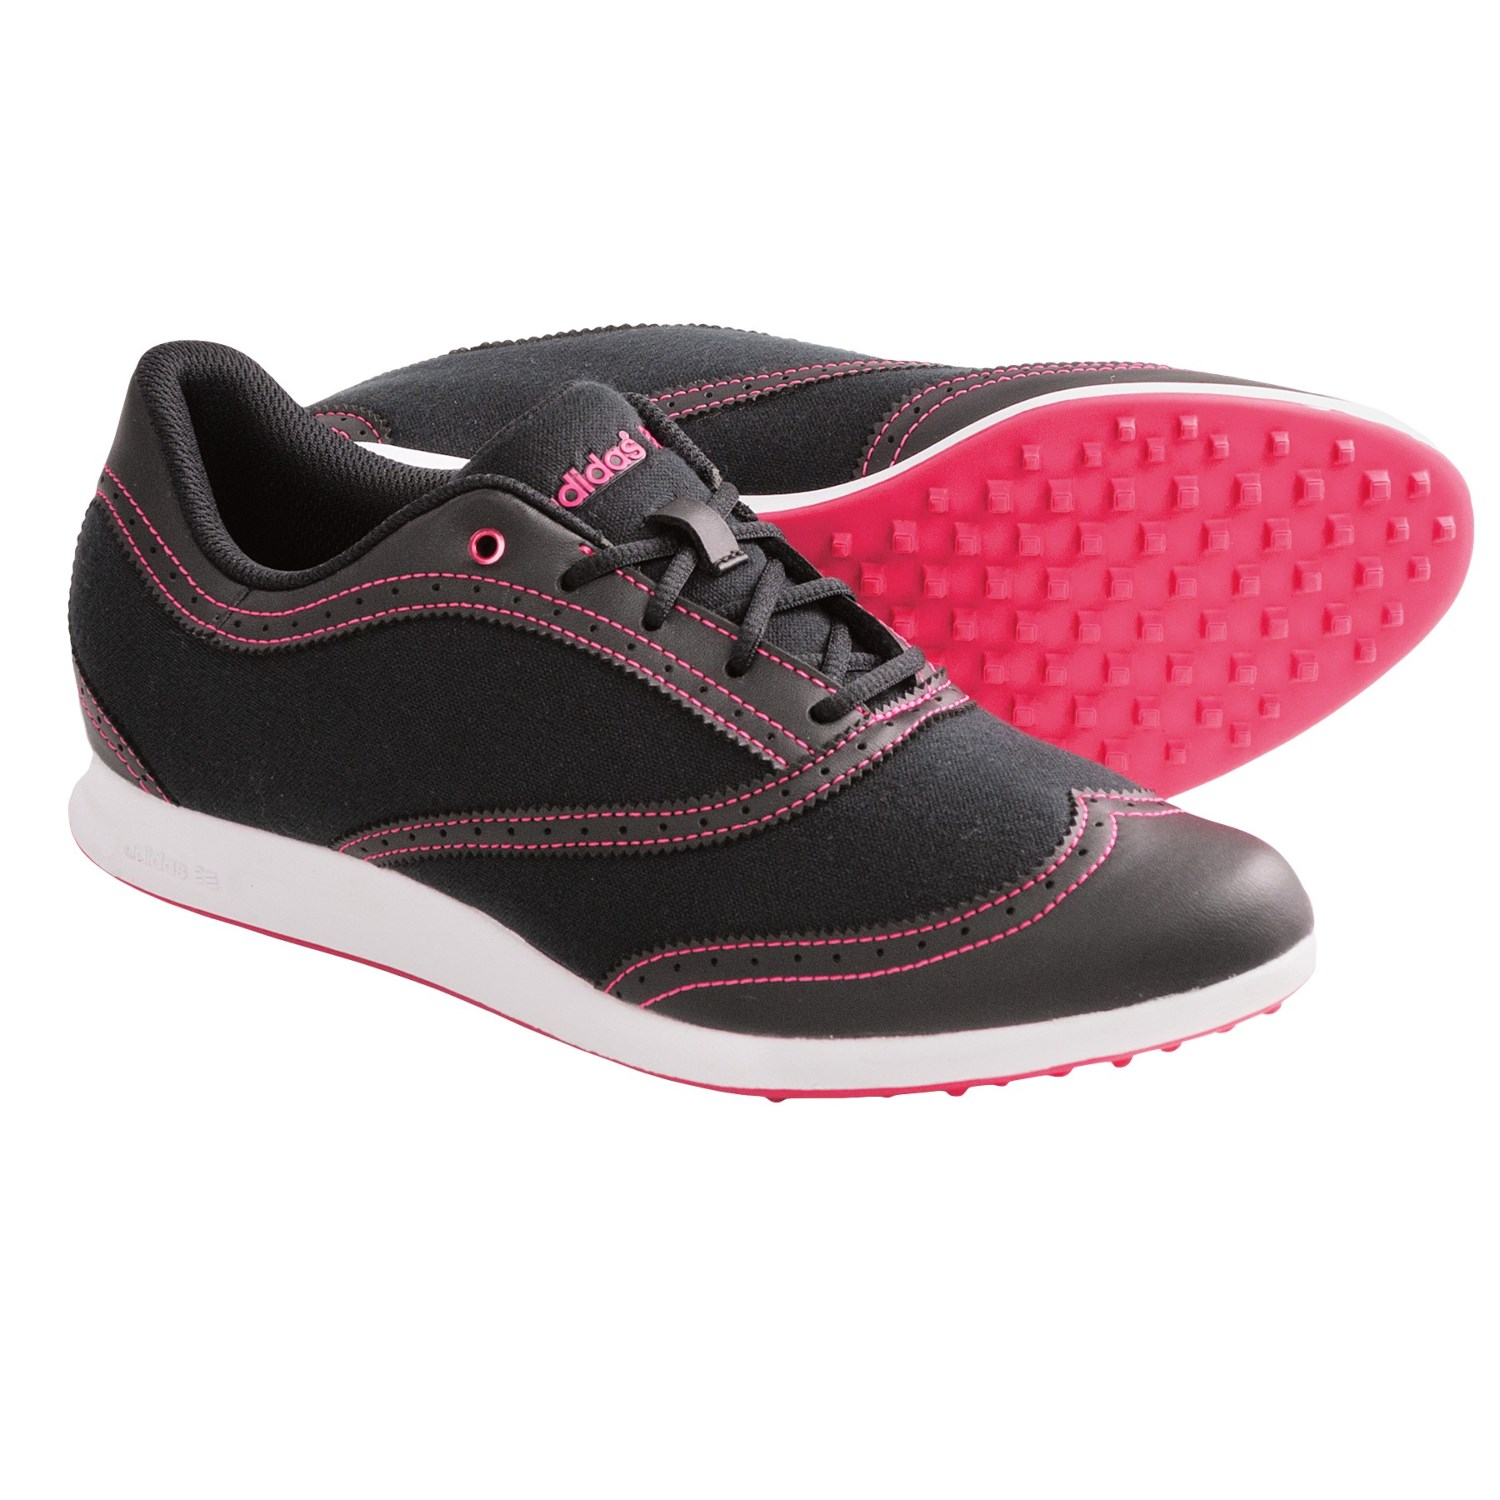 Nike Lunar Summer Lite Women's Spikeless Golf Shoes - ON SALE